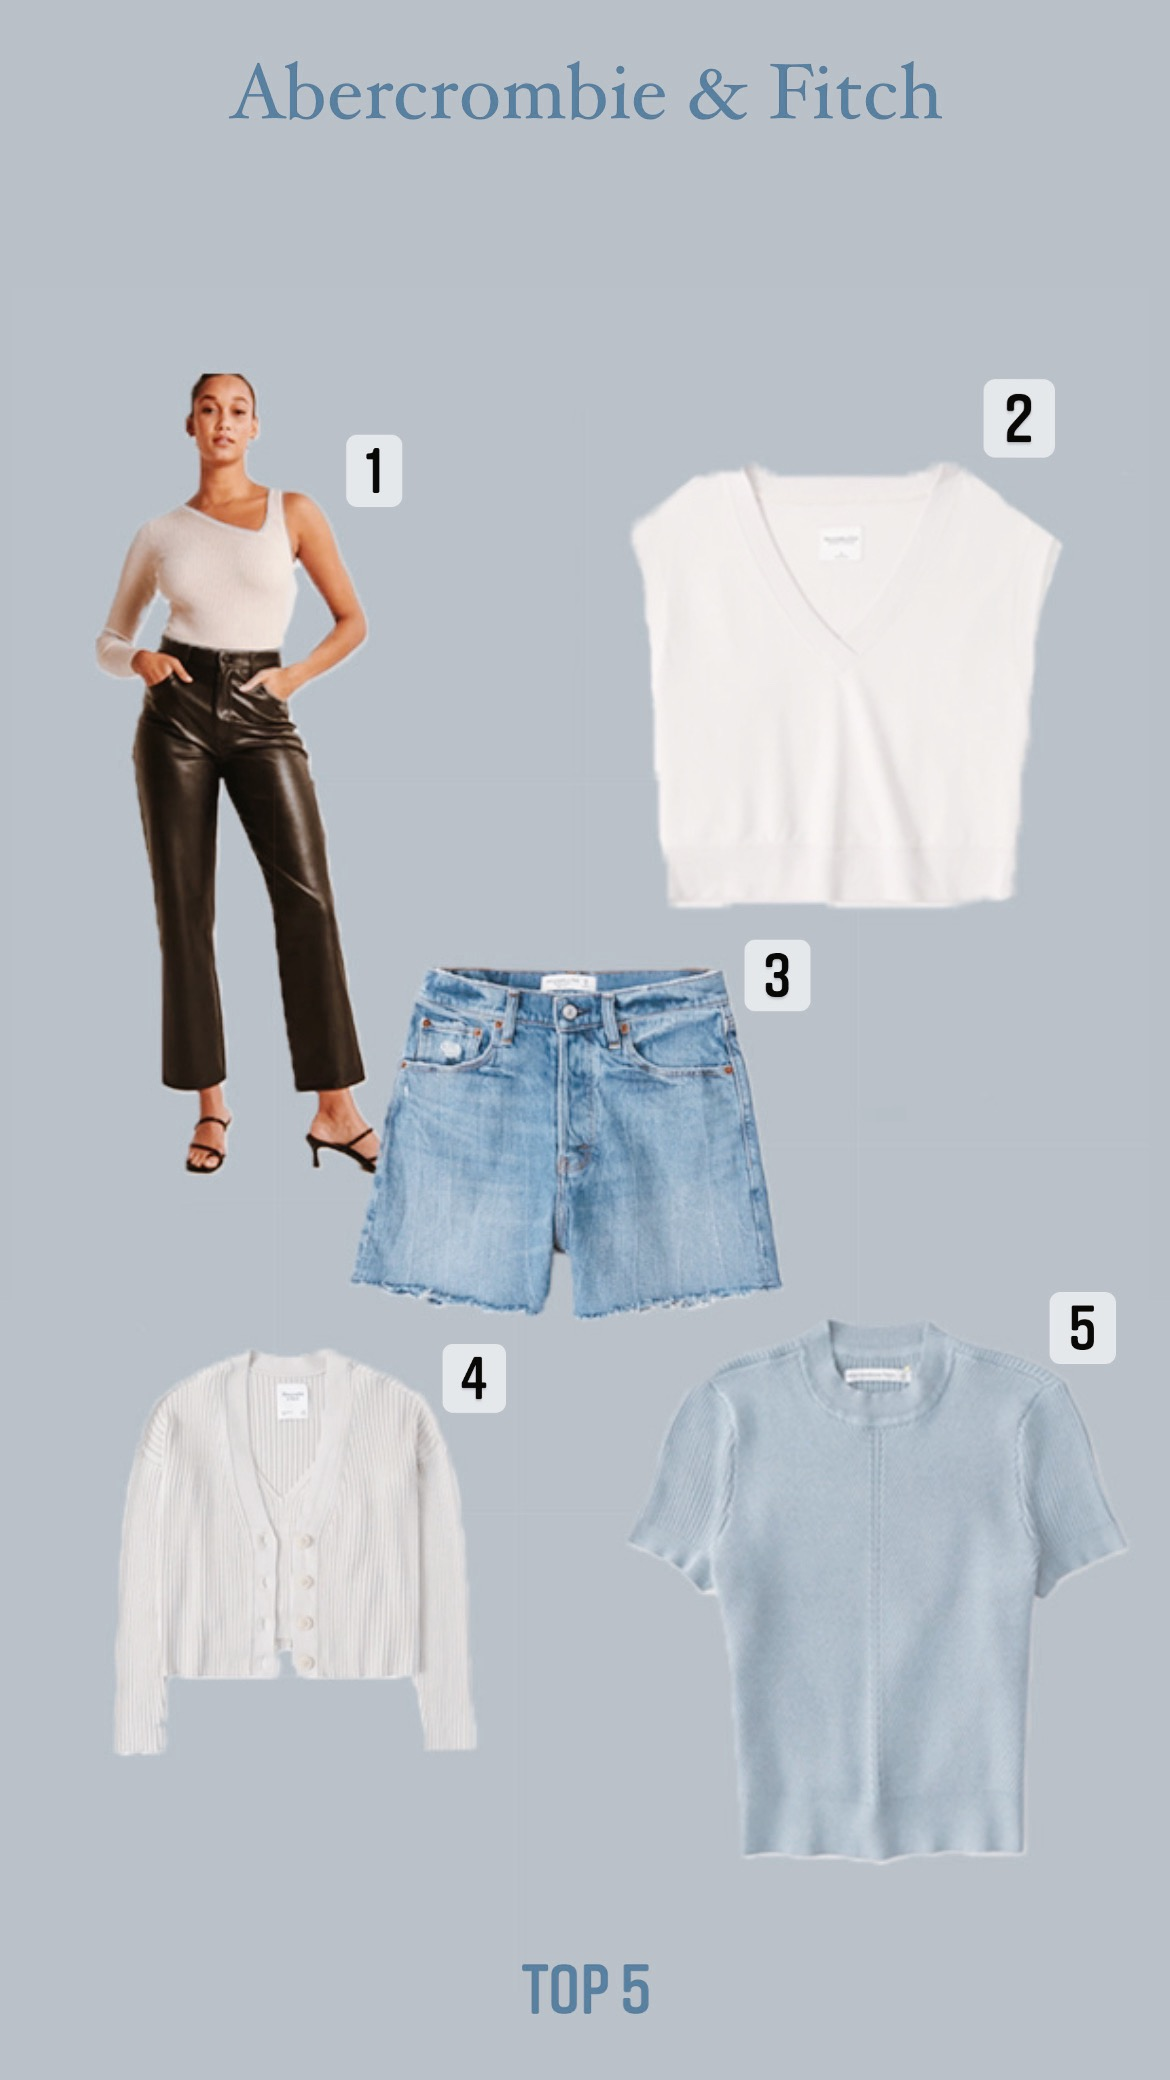 abercrombie & fitch fal trends